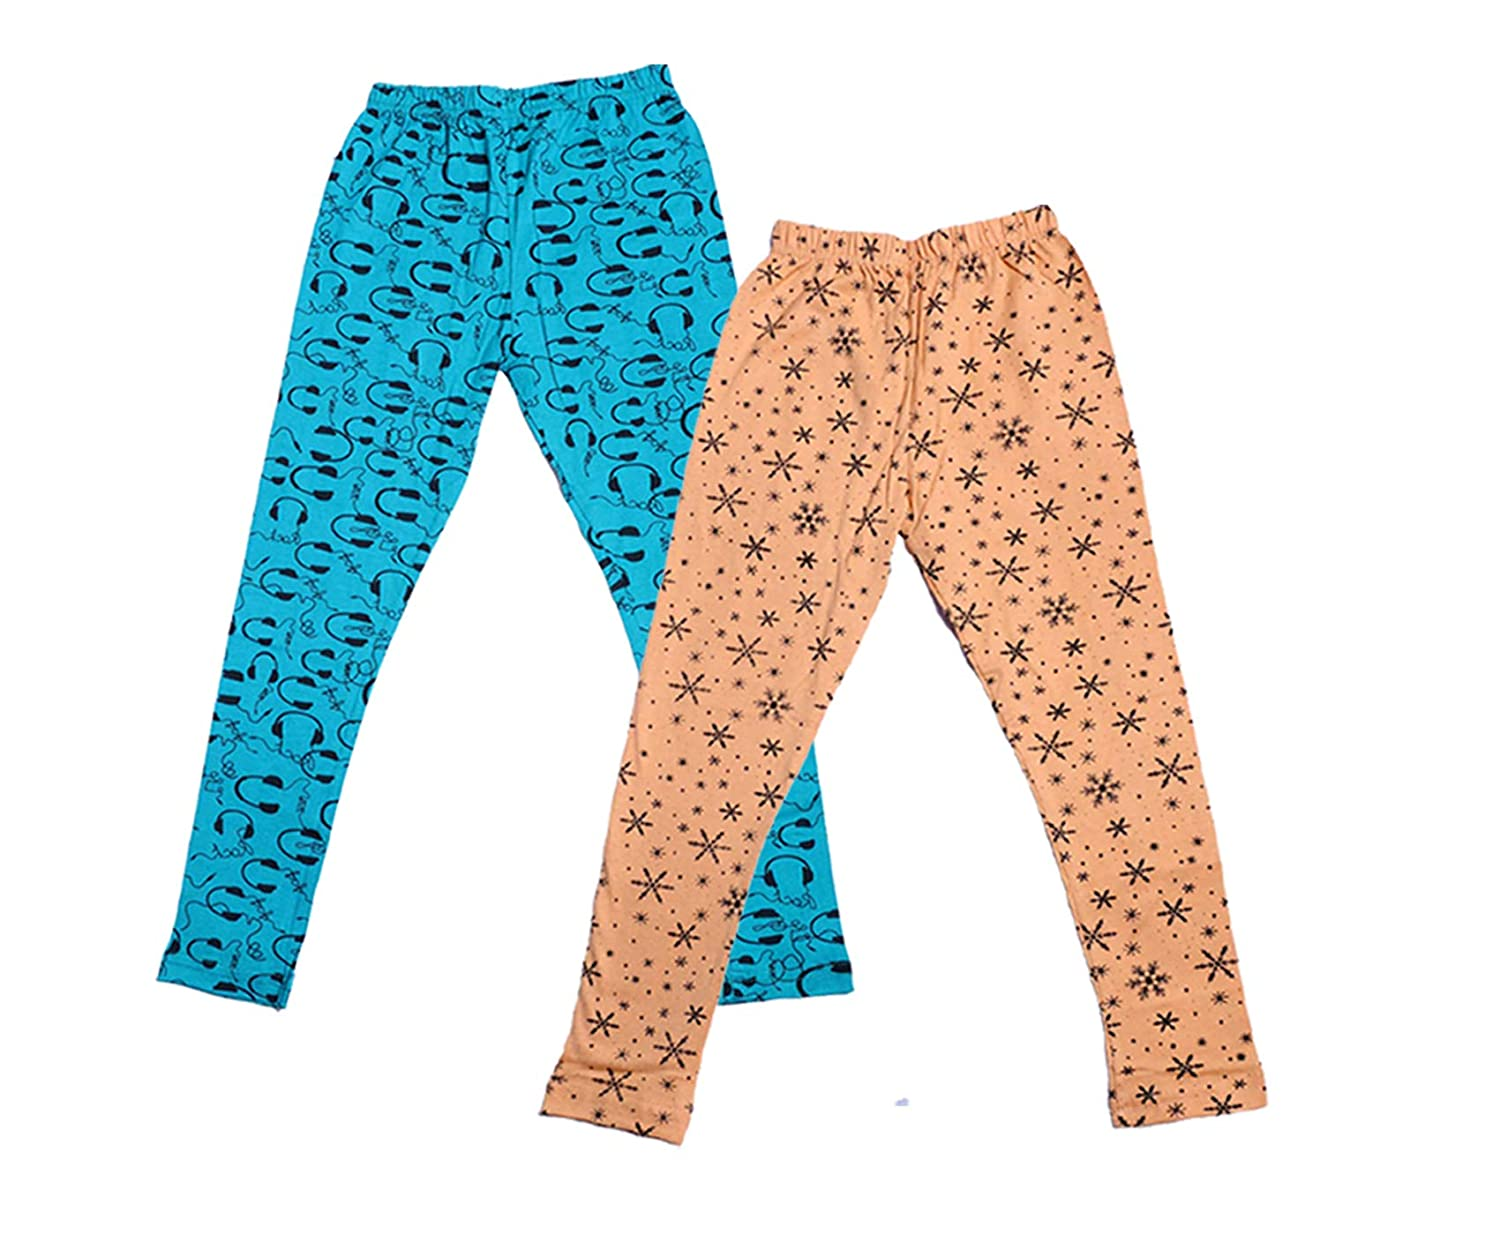 Pack Of 2 Indistar Girls Super Soft and Stylish Cotton Printed Leggings